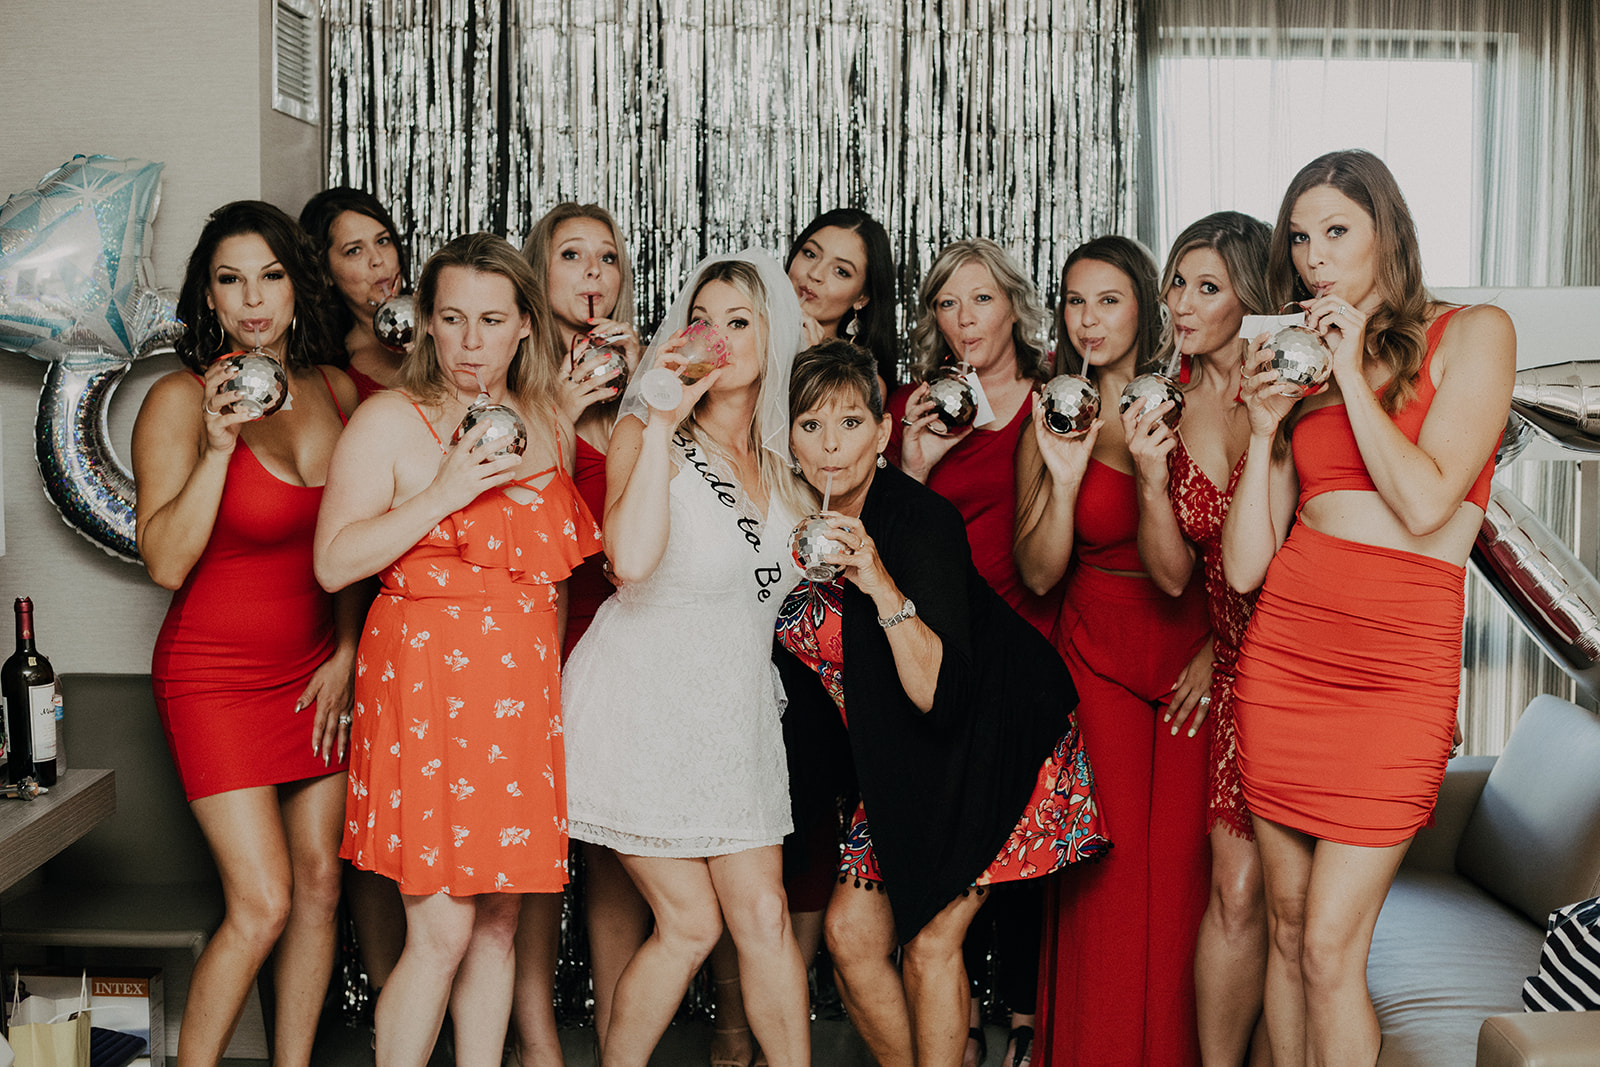 Des Moines Bachelorette Party at the AC Hotel